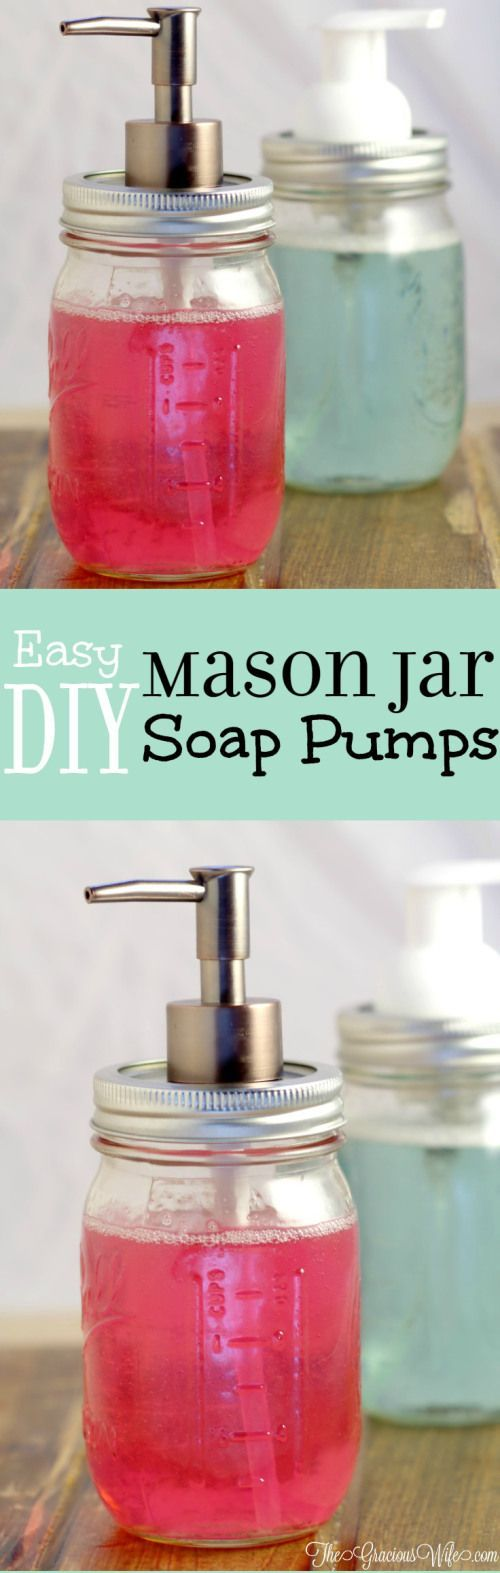 Easy DIY Mason Jar Soap Pumps